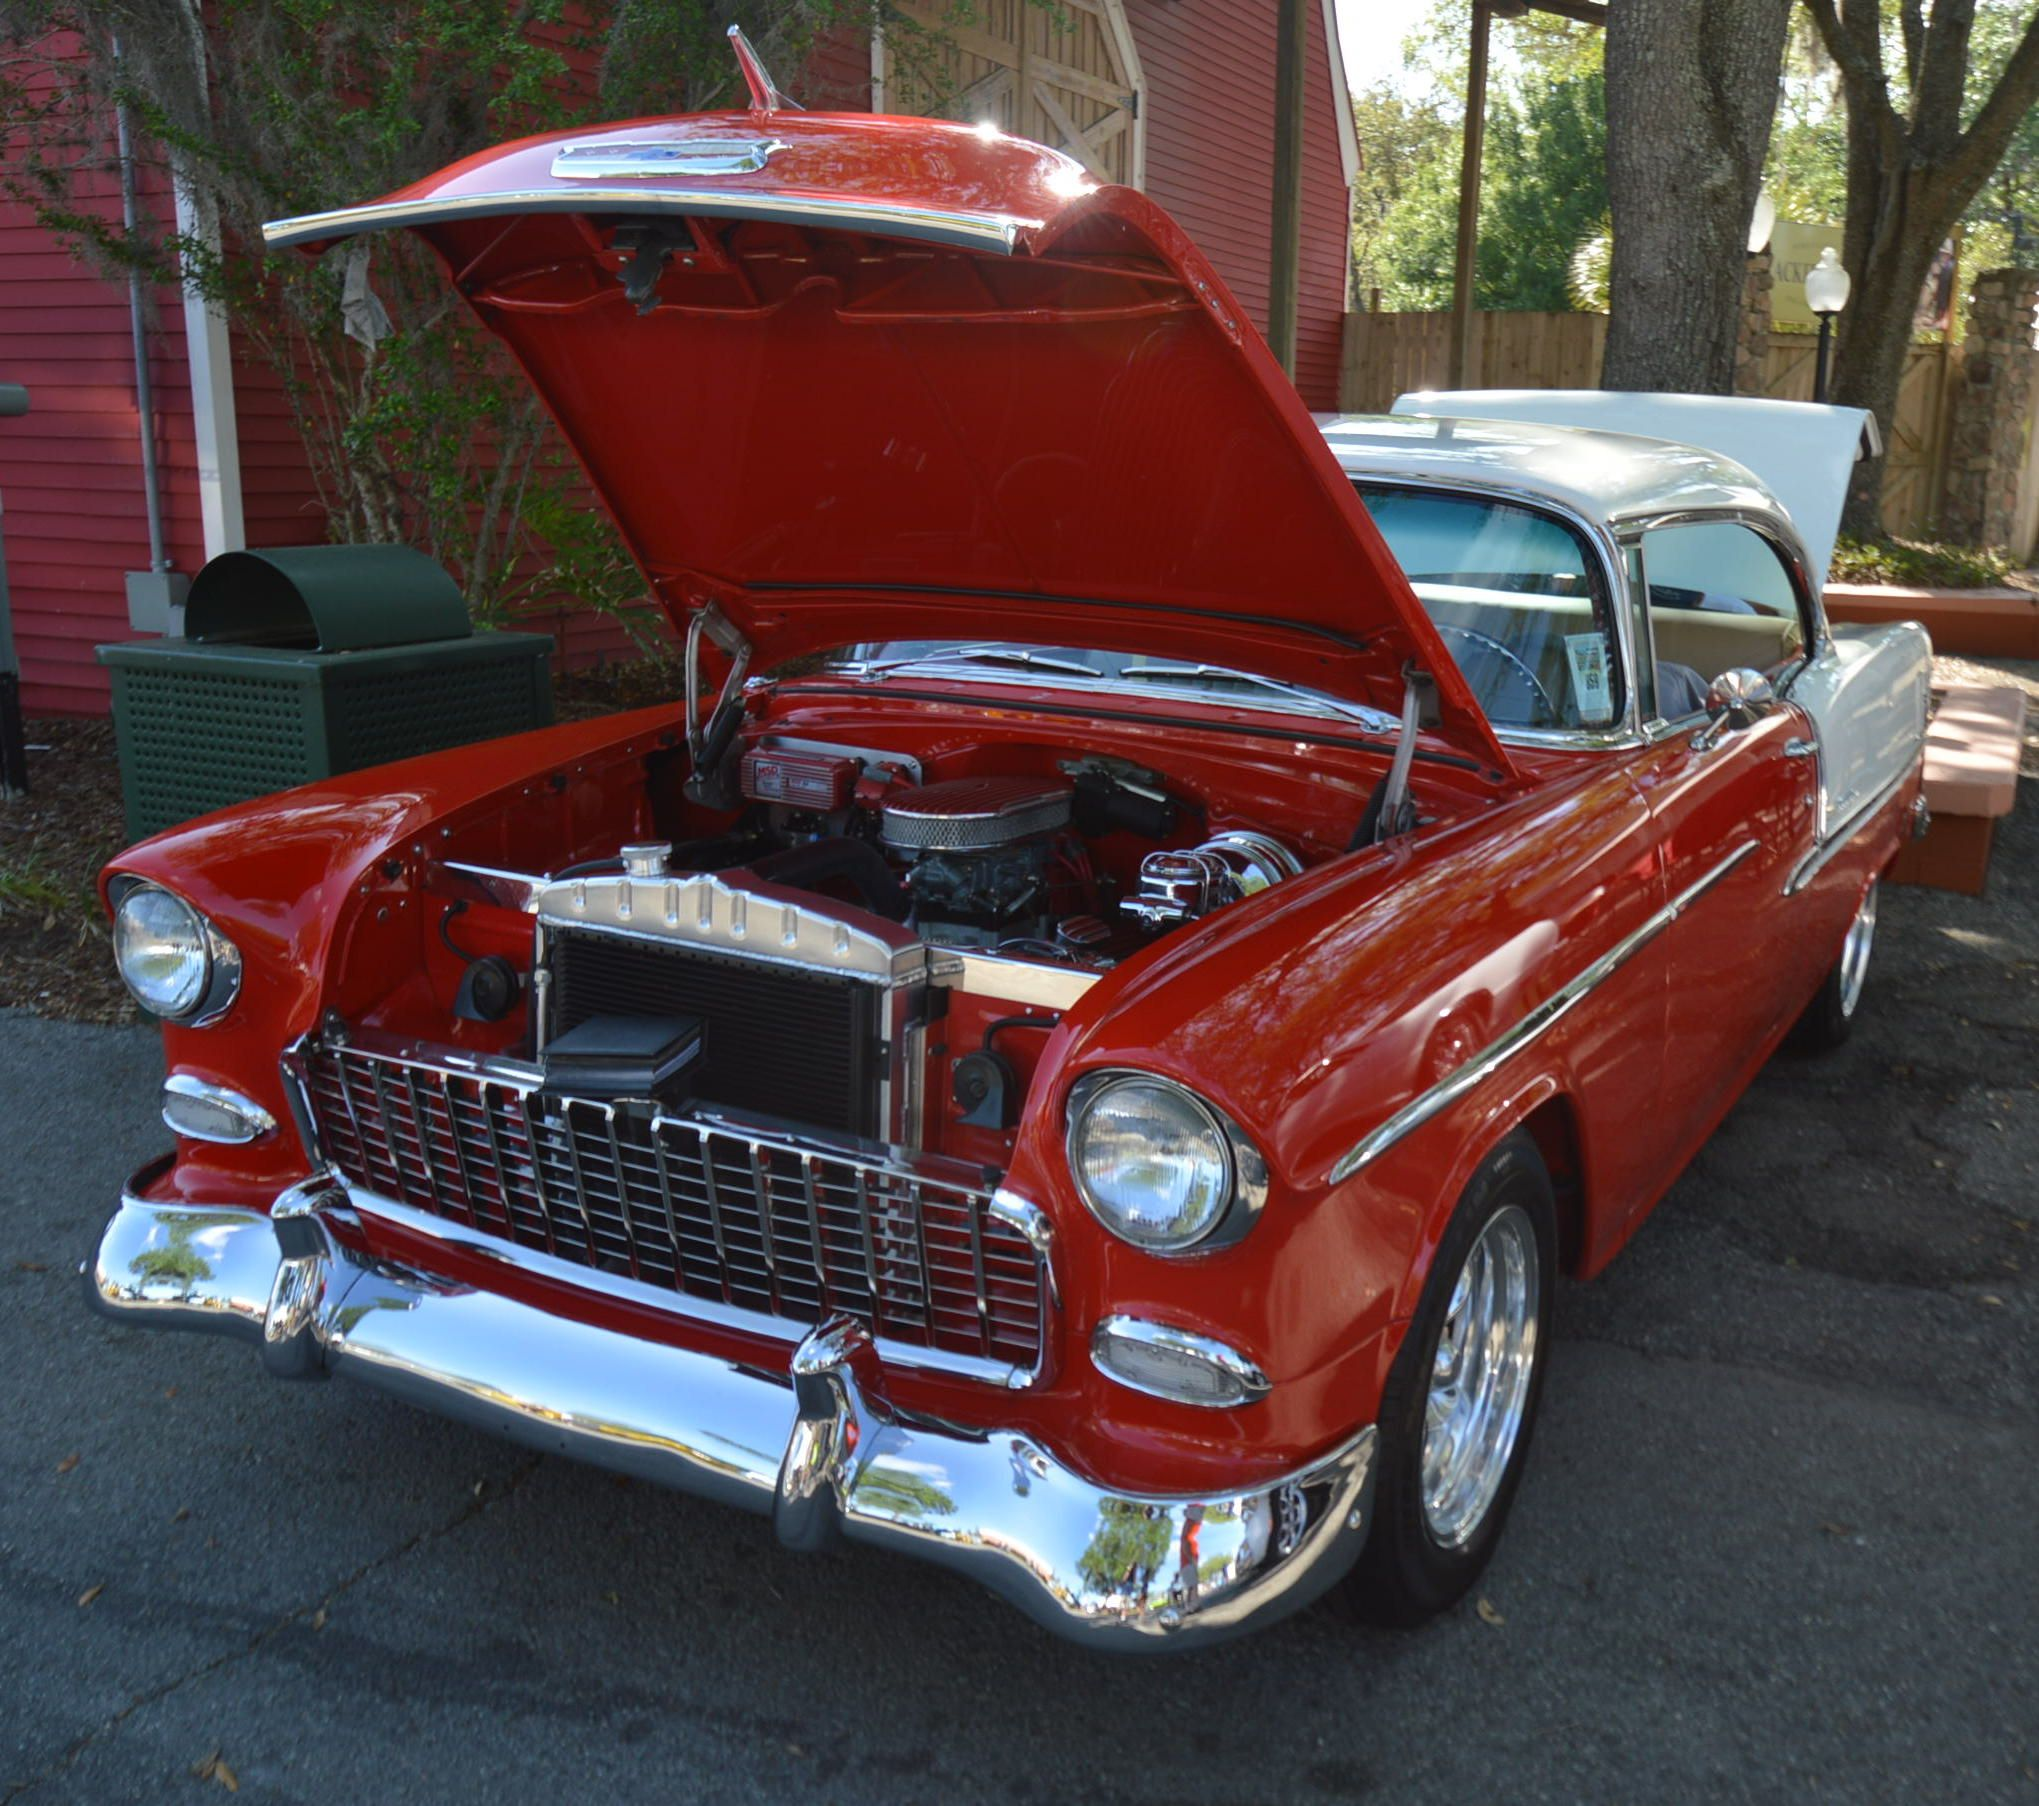 Chevy BelAir. CarStorian at the National Street Rod